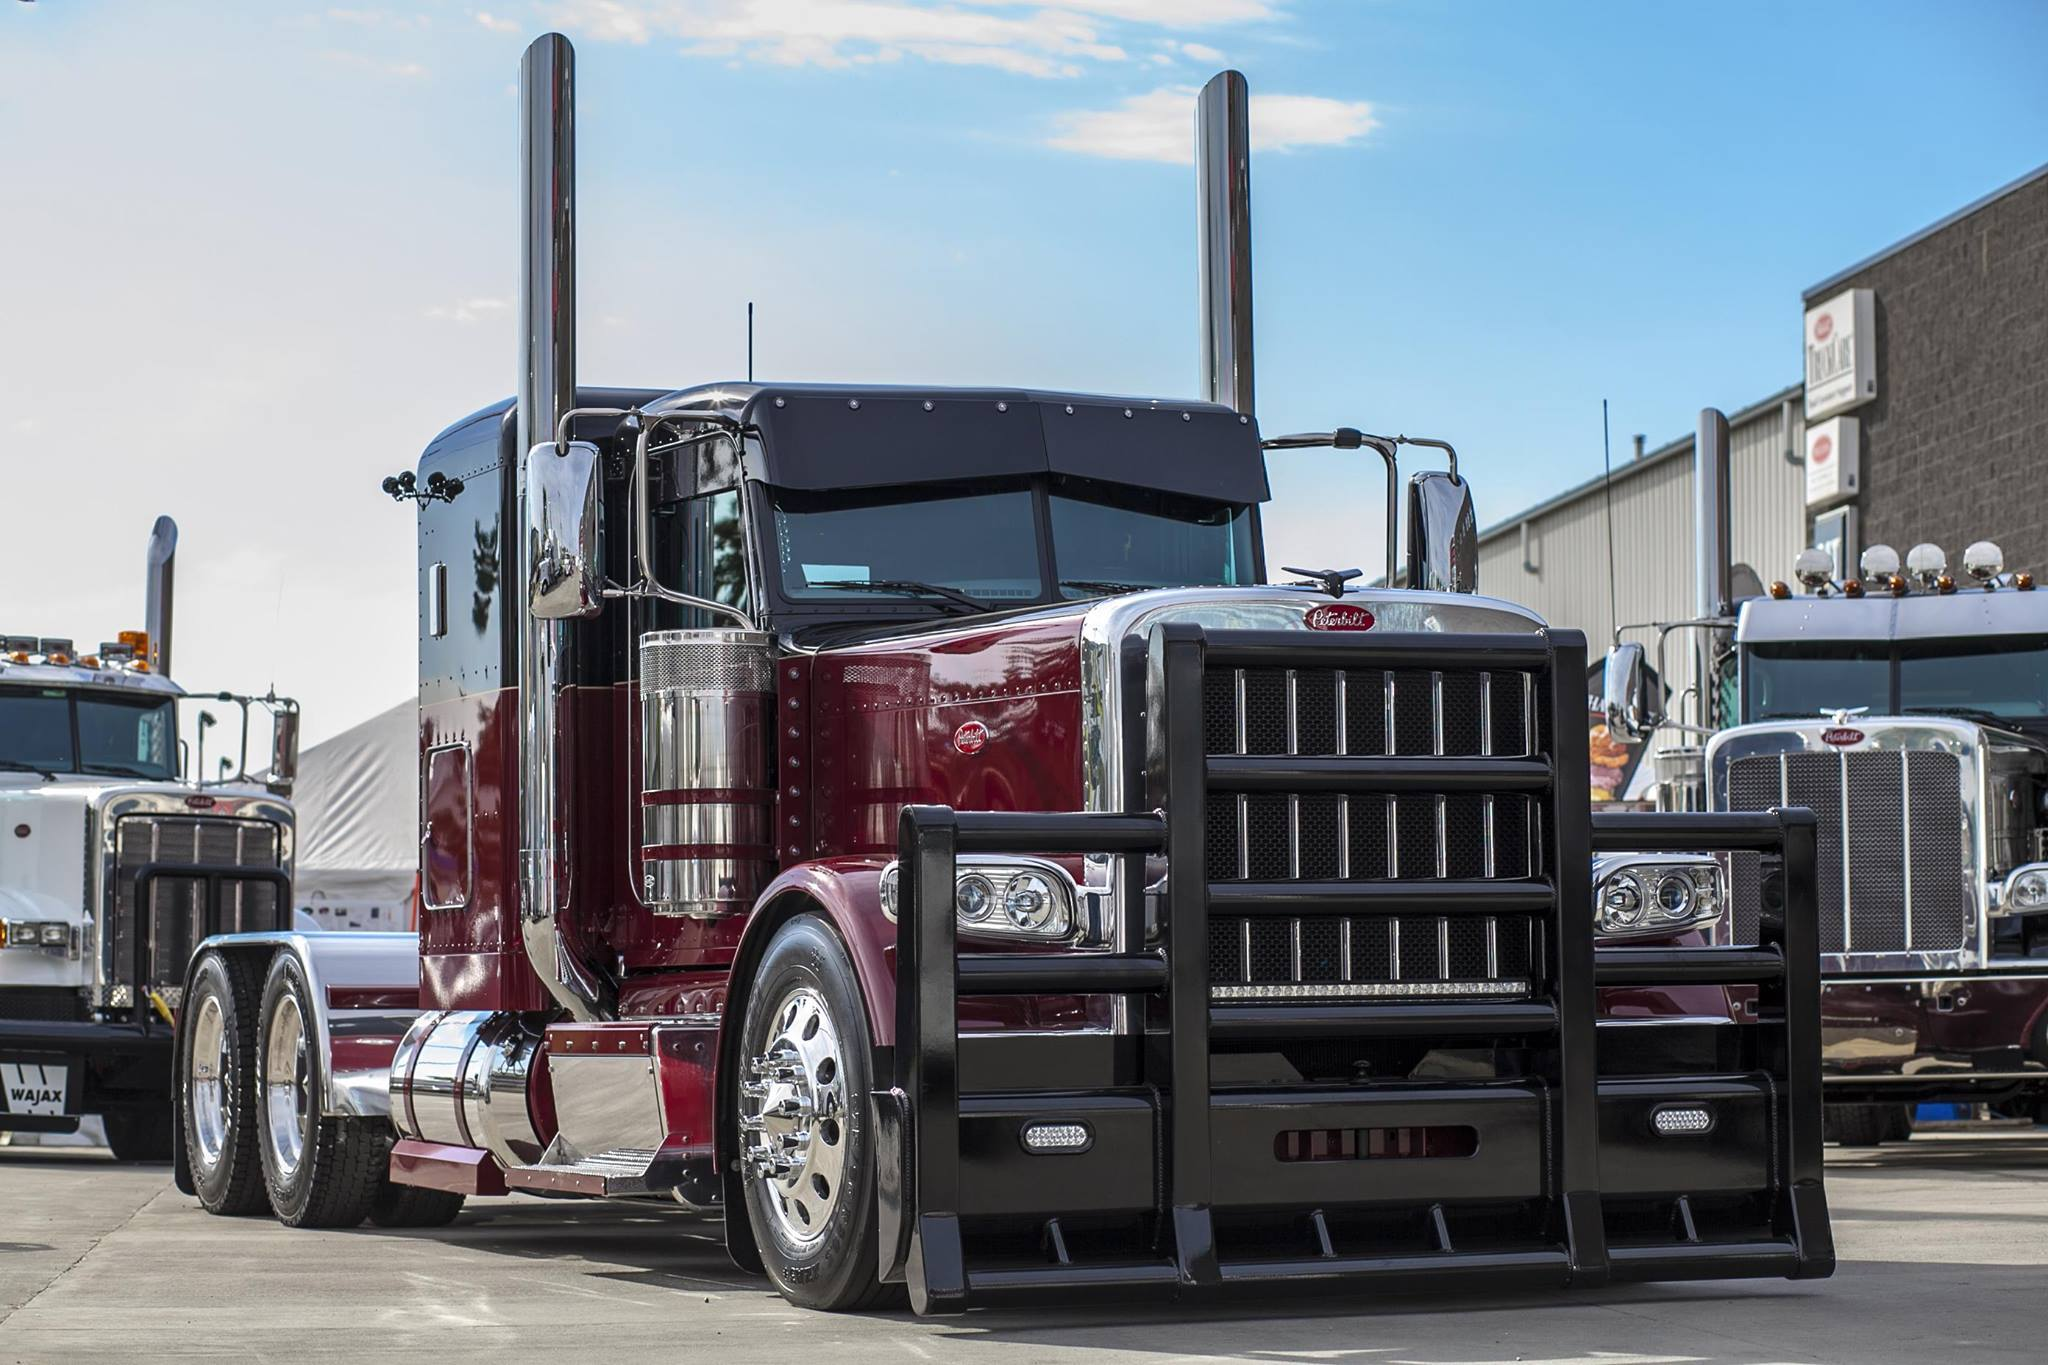 Peterbilt Wallpaper & Screen Saver - WallpaperSafari